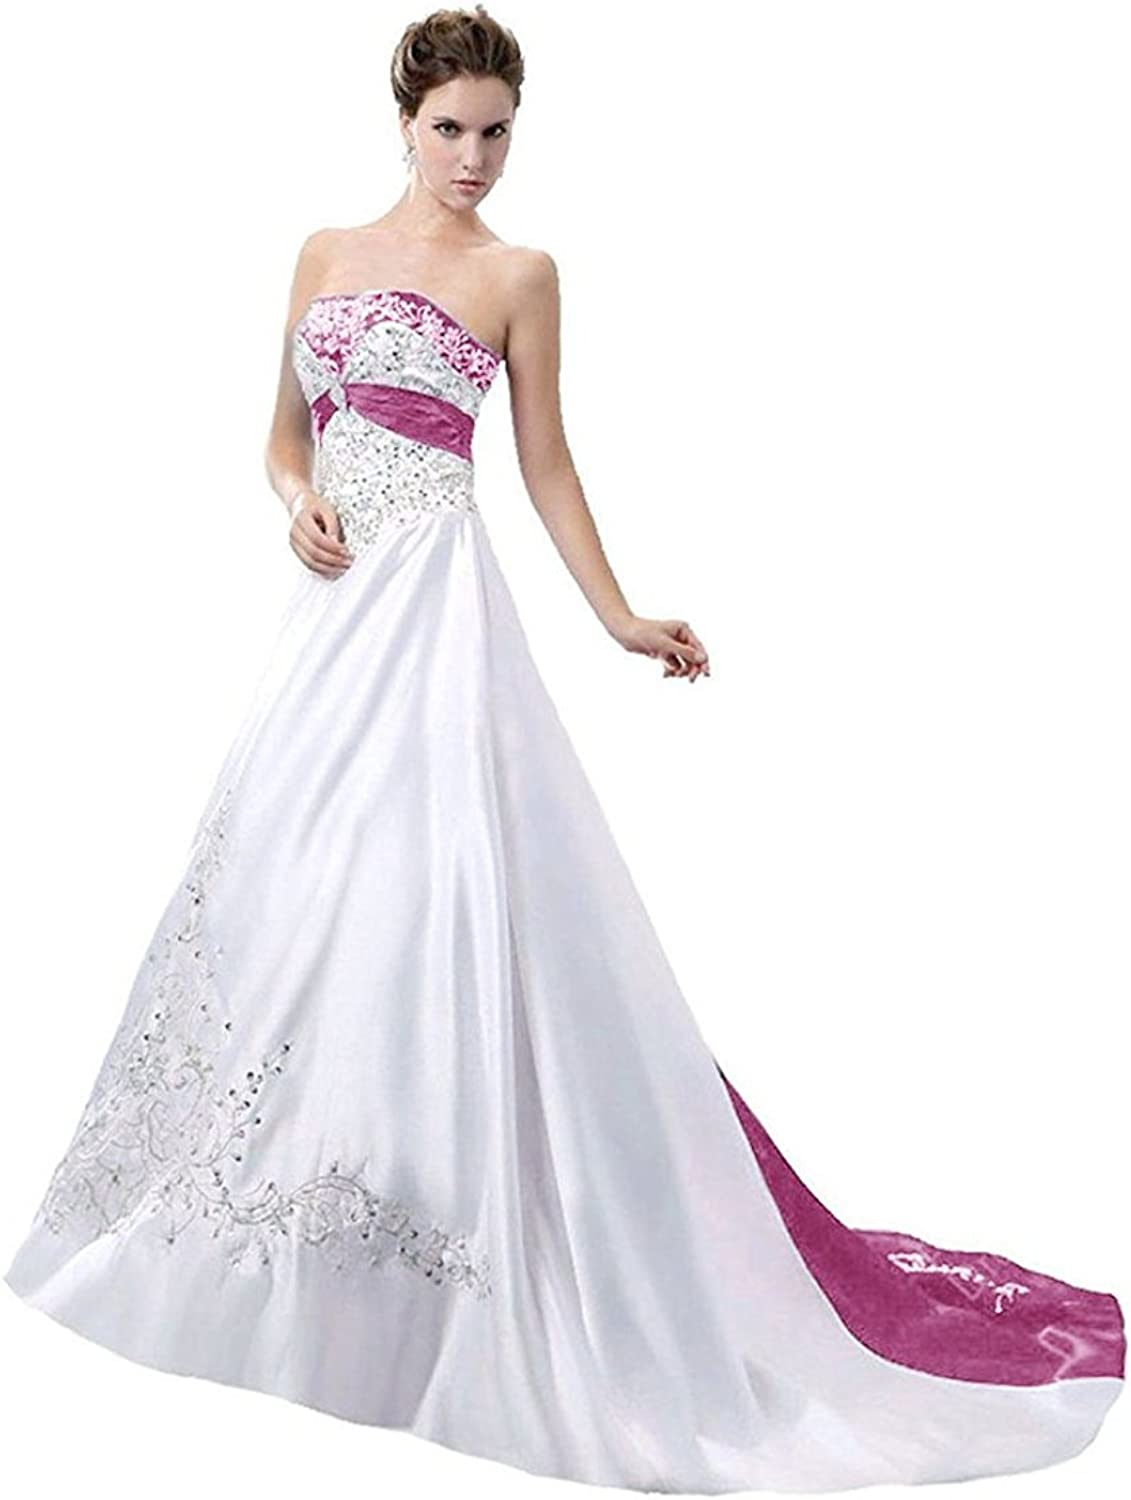 JINGDRESS Embroidery Beaded Wedding Dresses Satin Bridal Gowns for Women